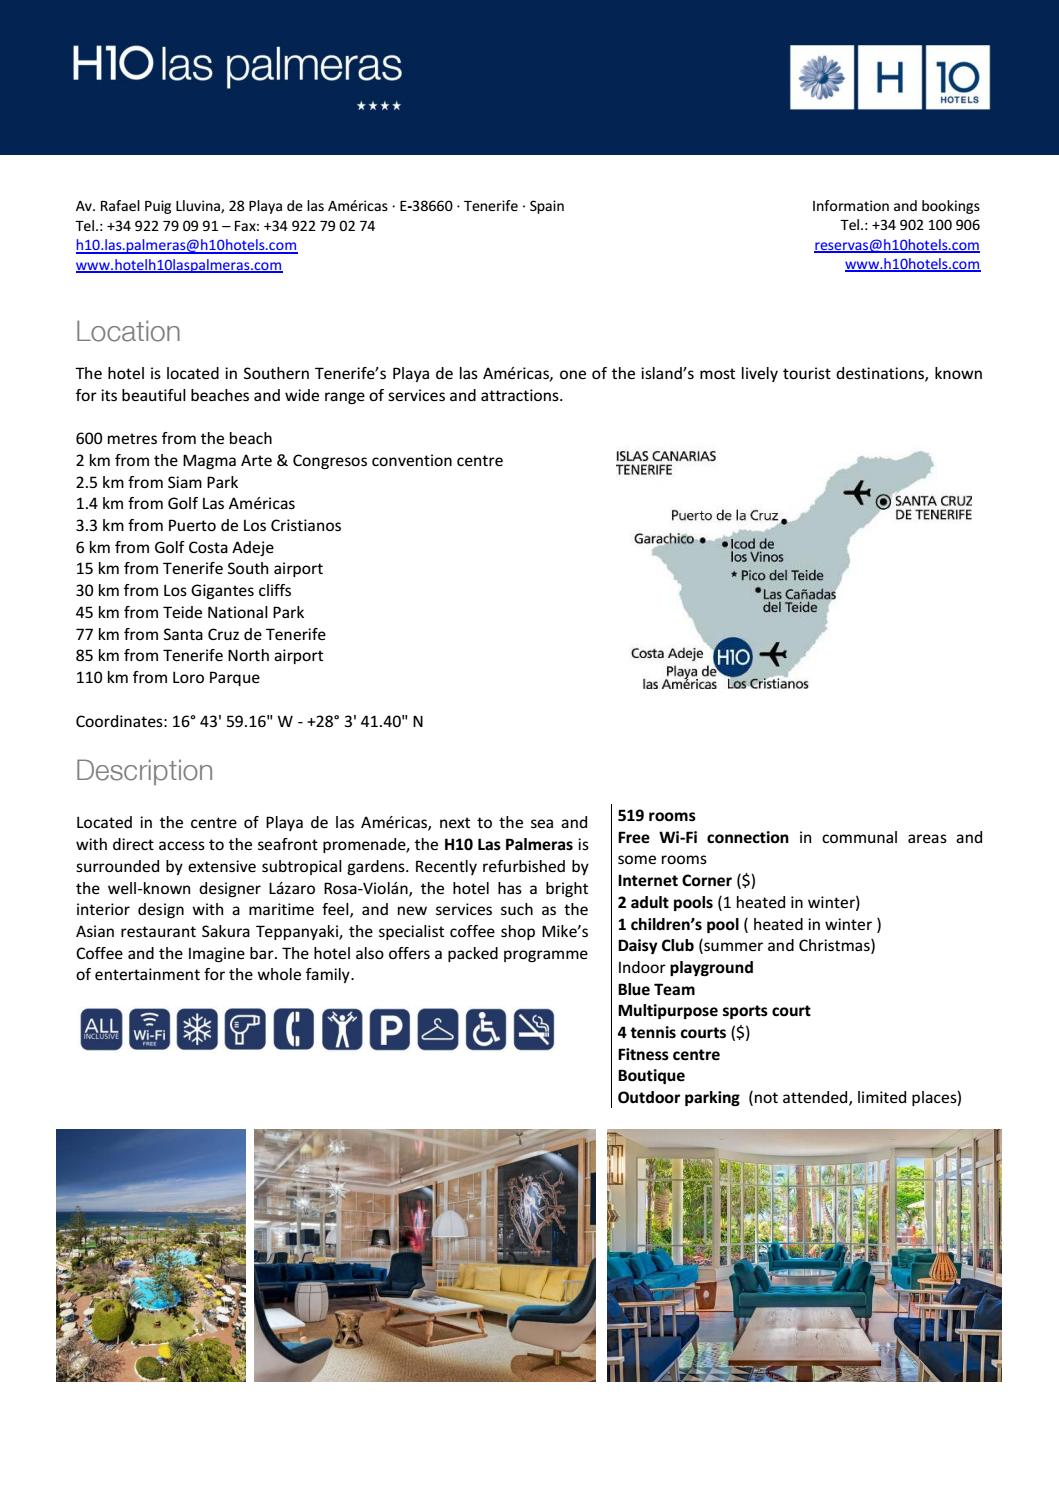 H10 Las Palmeras Our Rooms By H1o Hotels Meetings Events Issuu